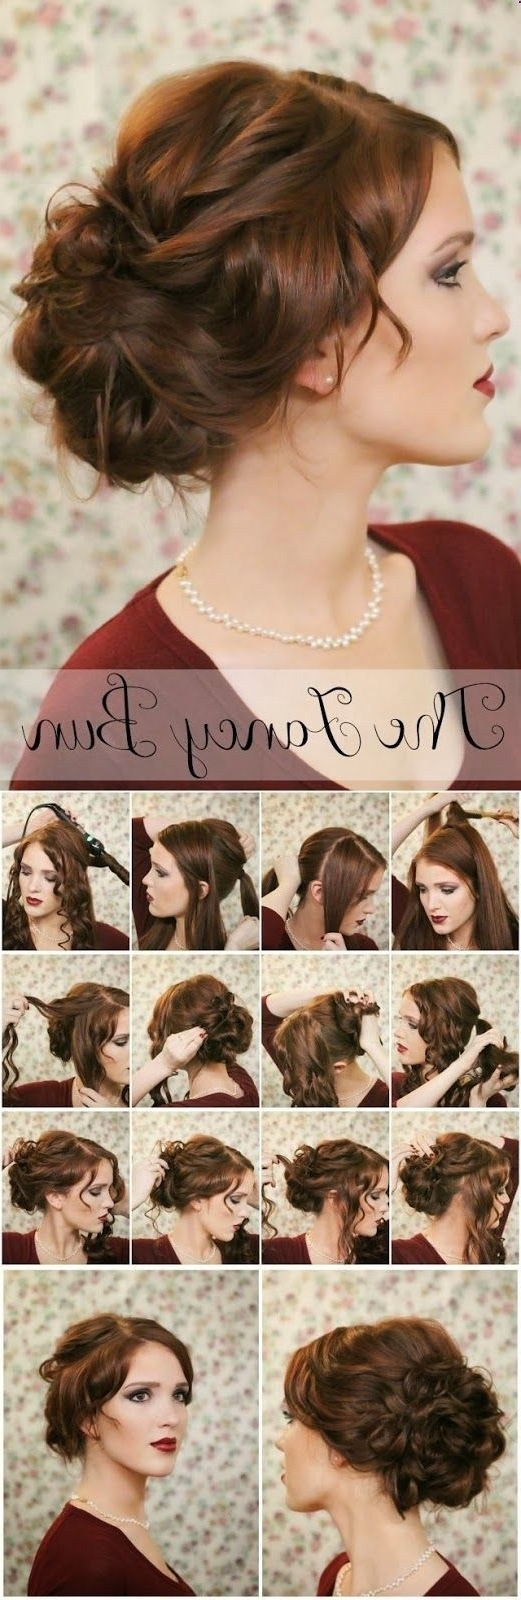 16 Pretty And Chic Updos For Medium Length Hair – Pretty Designs Regarding Easy Diy Updos For Medium Length Hair (View 3 of 15)